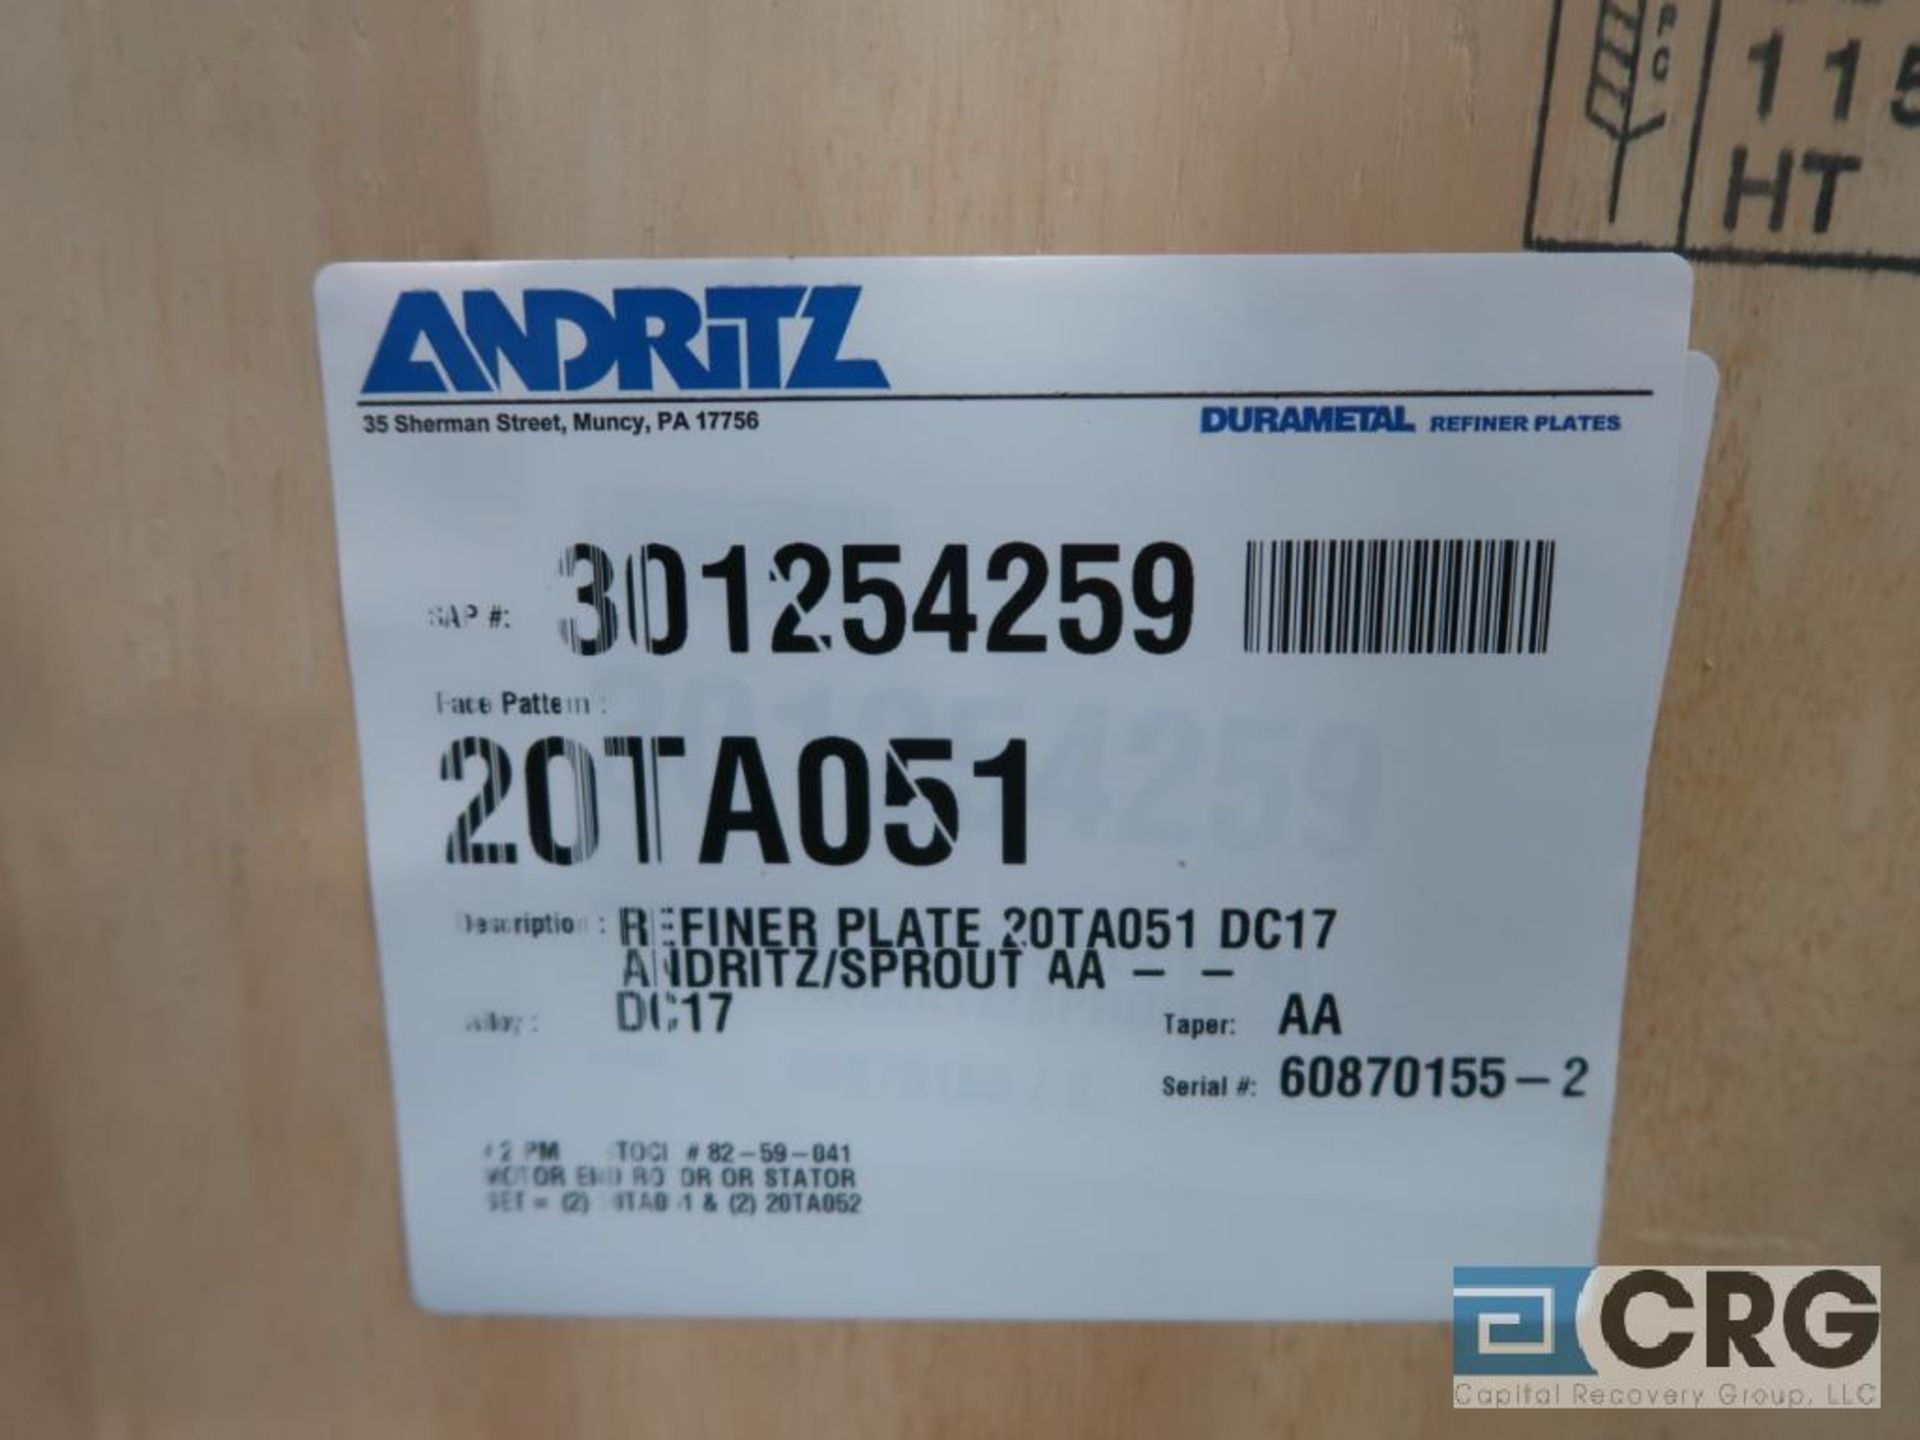 Lot of (4) Andritz 20TA051 refiner plates (Finish Building) - Image 2 of 2